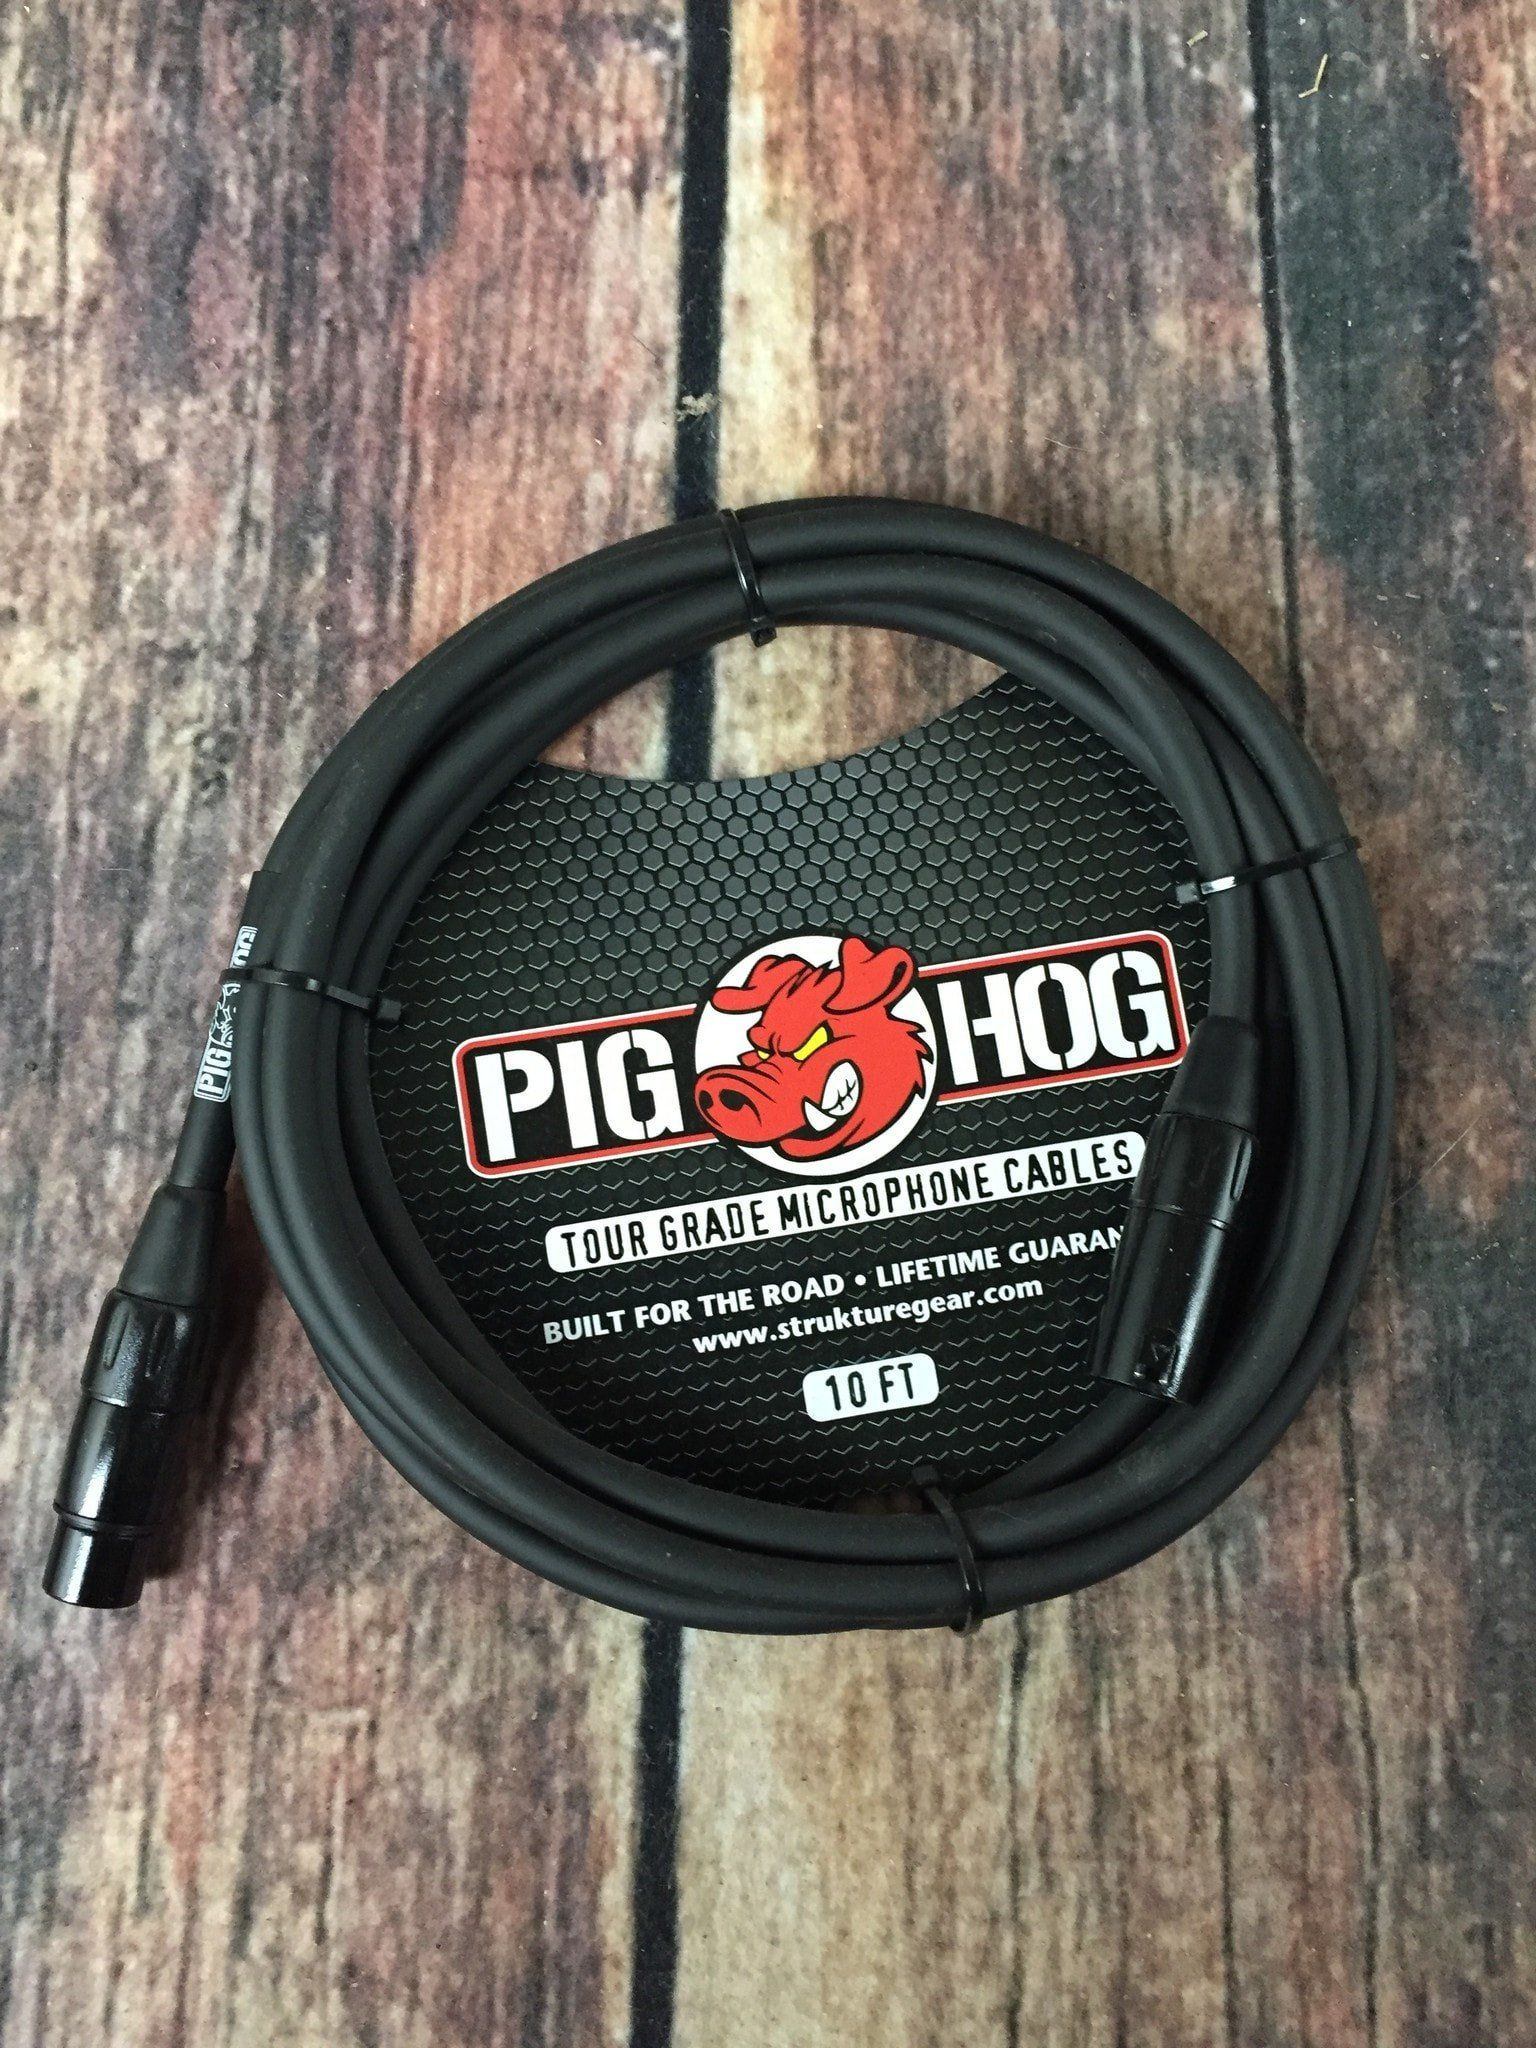 Pig Hog PHM10 8mm 10ft XLR Microphone Cable Cable, This